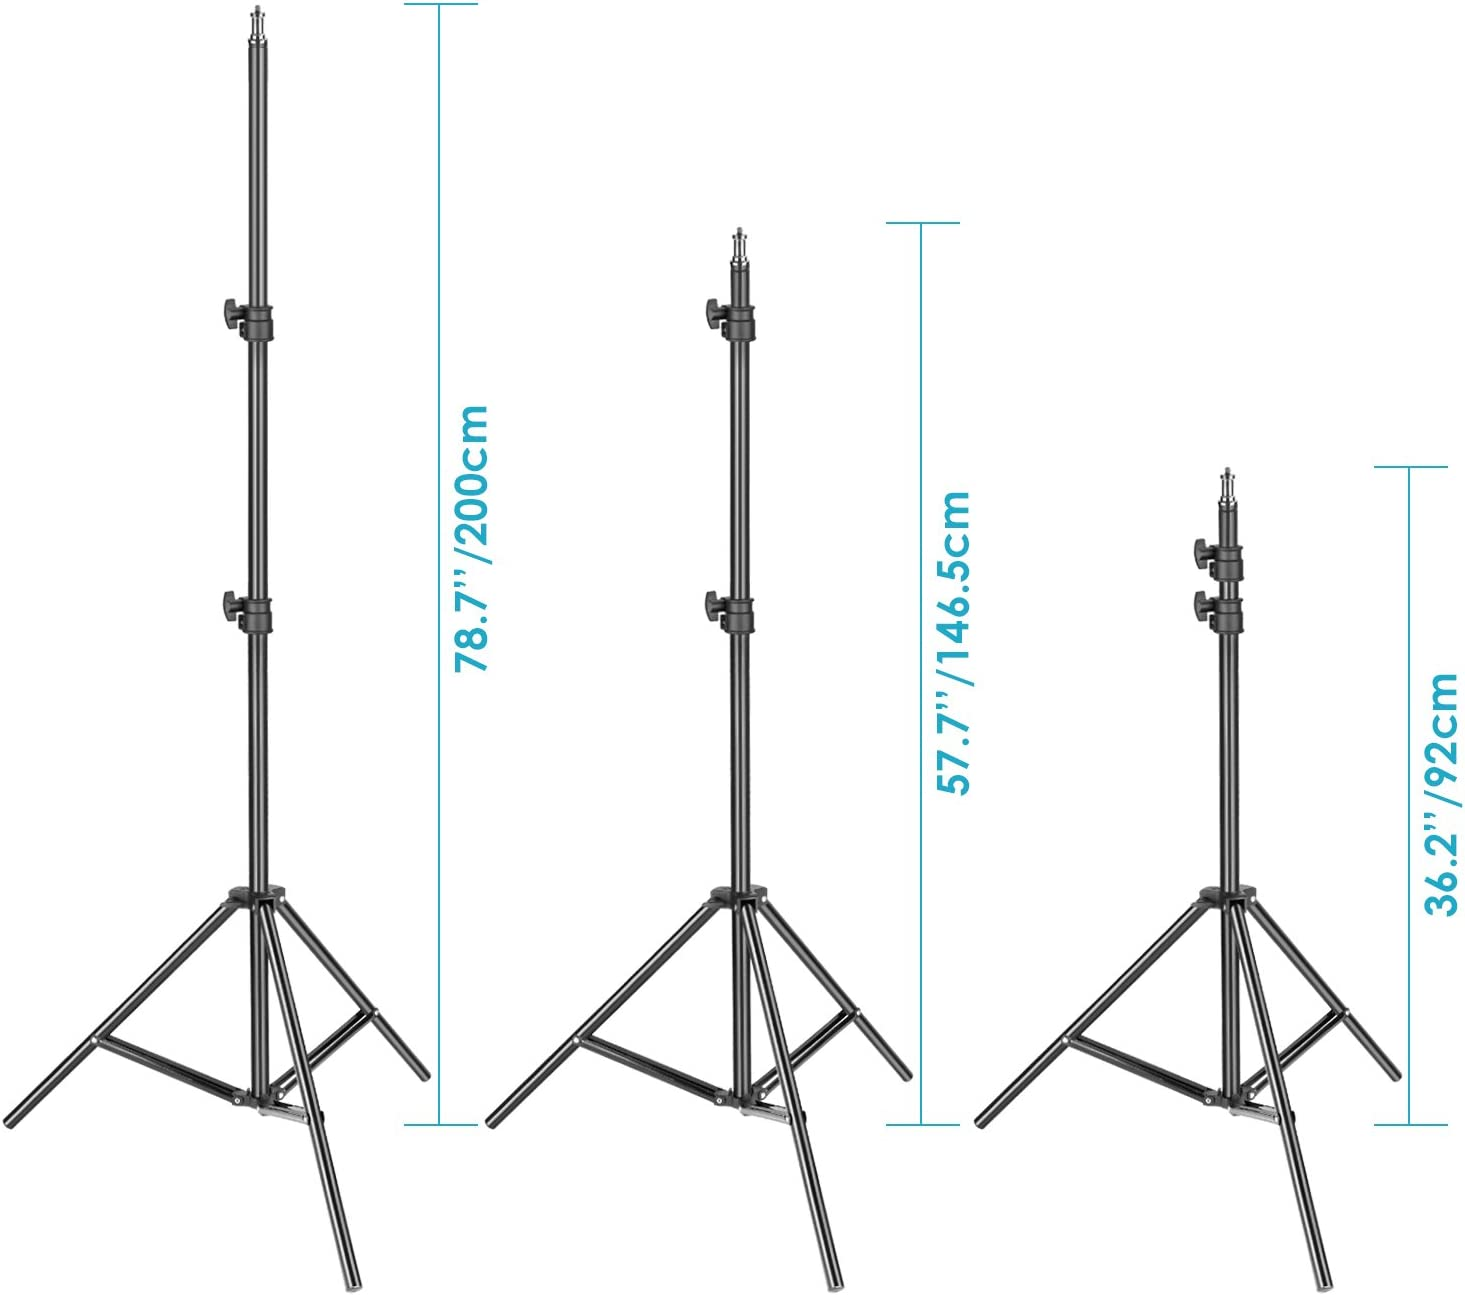 YouTube Outdoor Video Photography 9 feet Light Stand for Studio Neewer Dimmable Bi-Color 960 LED Video Light and Stand Lighting Kit Ultra Thin 960 LED Panel with U Bracket and Durable Metal Frame